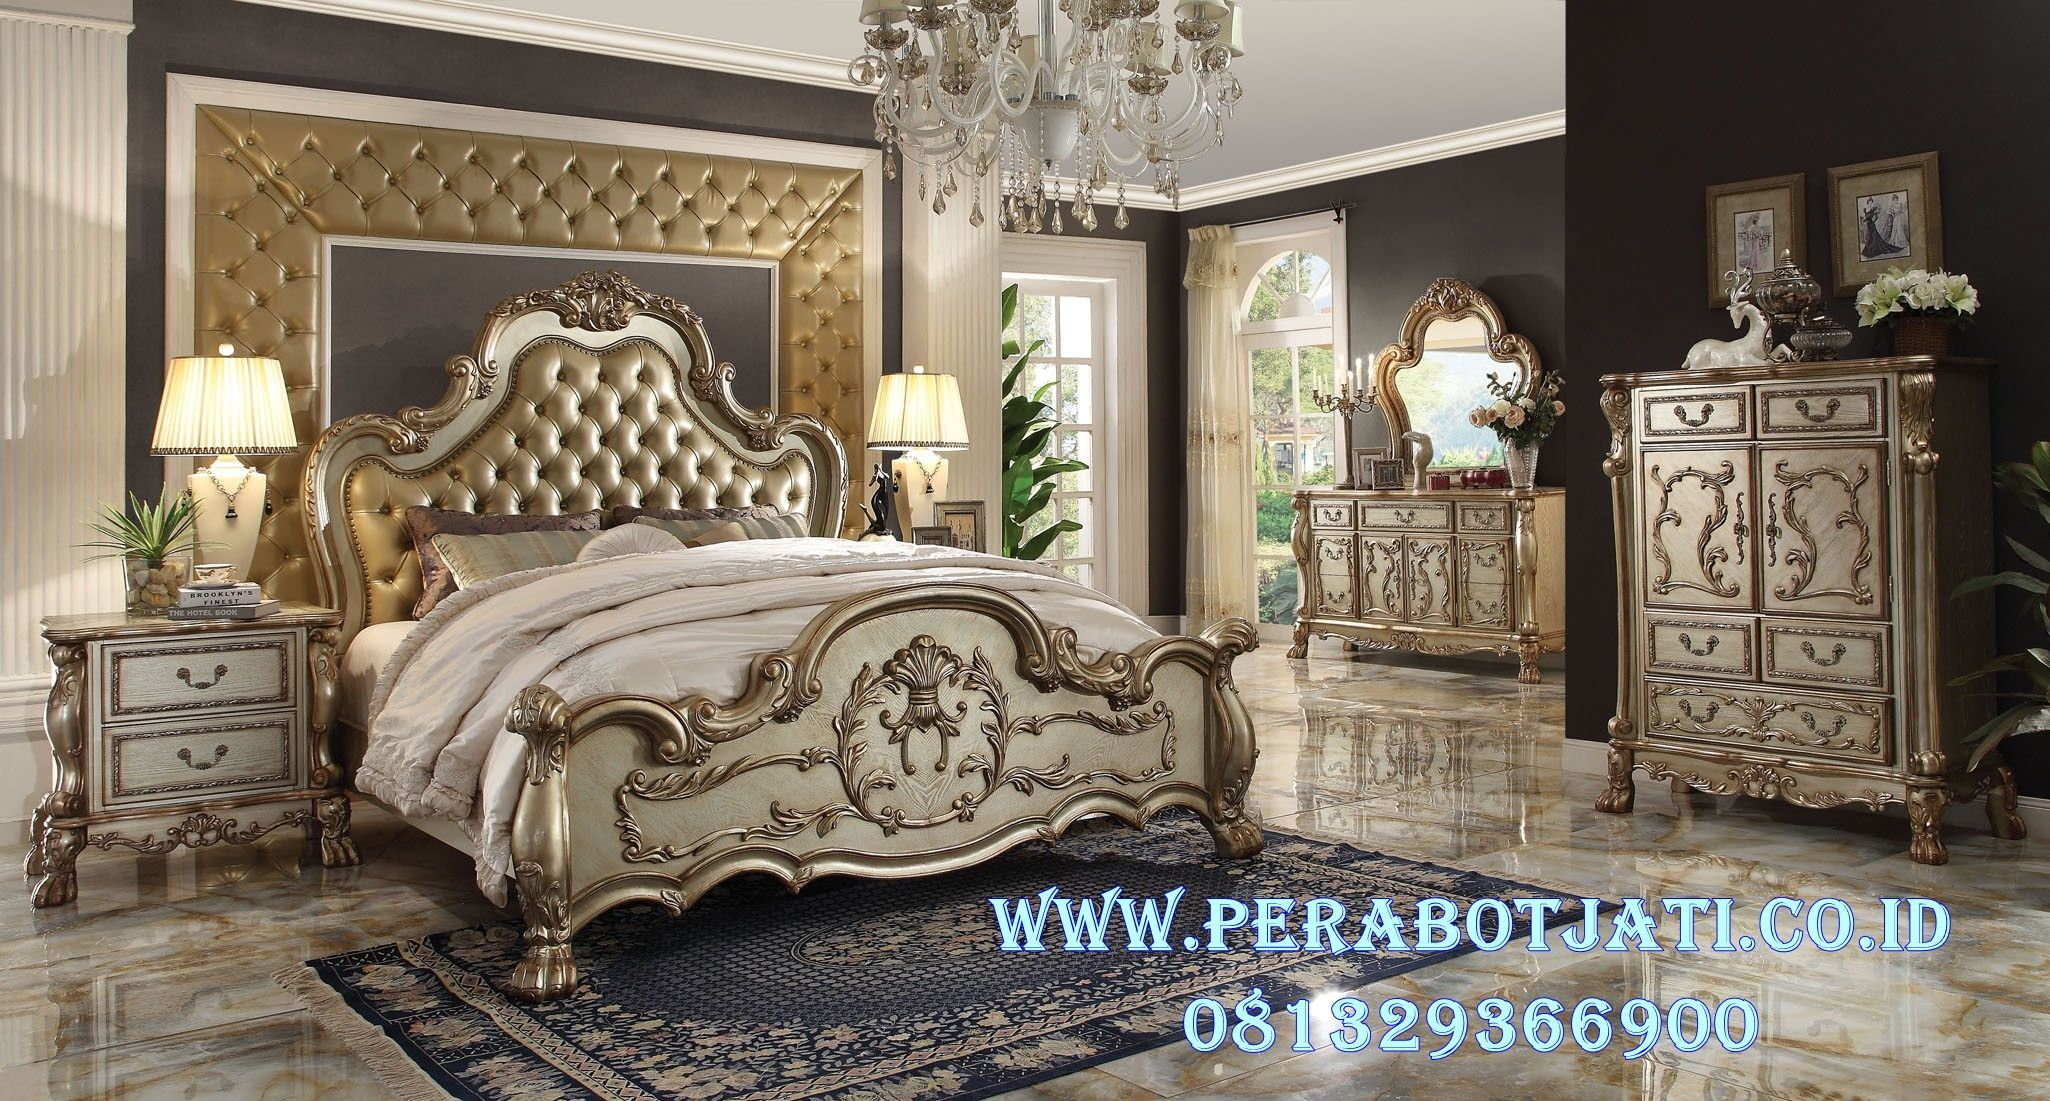 Patina style romantic bedroom - Acme 23160 Dresden Gold Patina And Bone Finish Victorian Bedroom Set With Leather Tufted Headboard